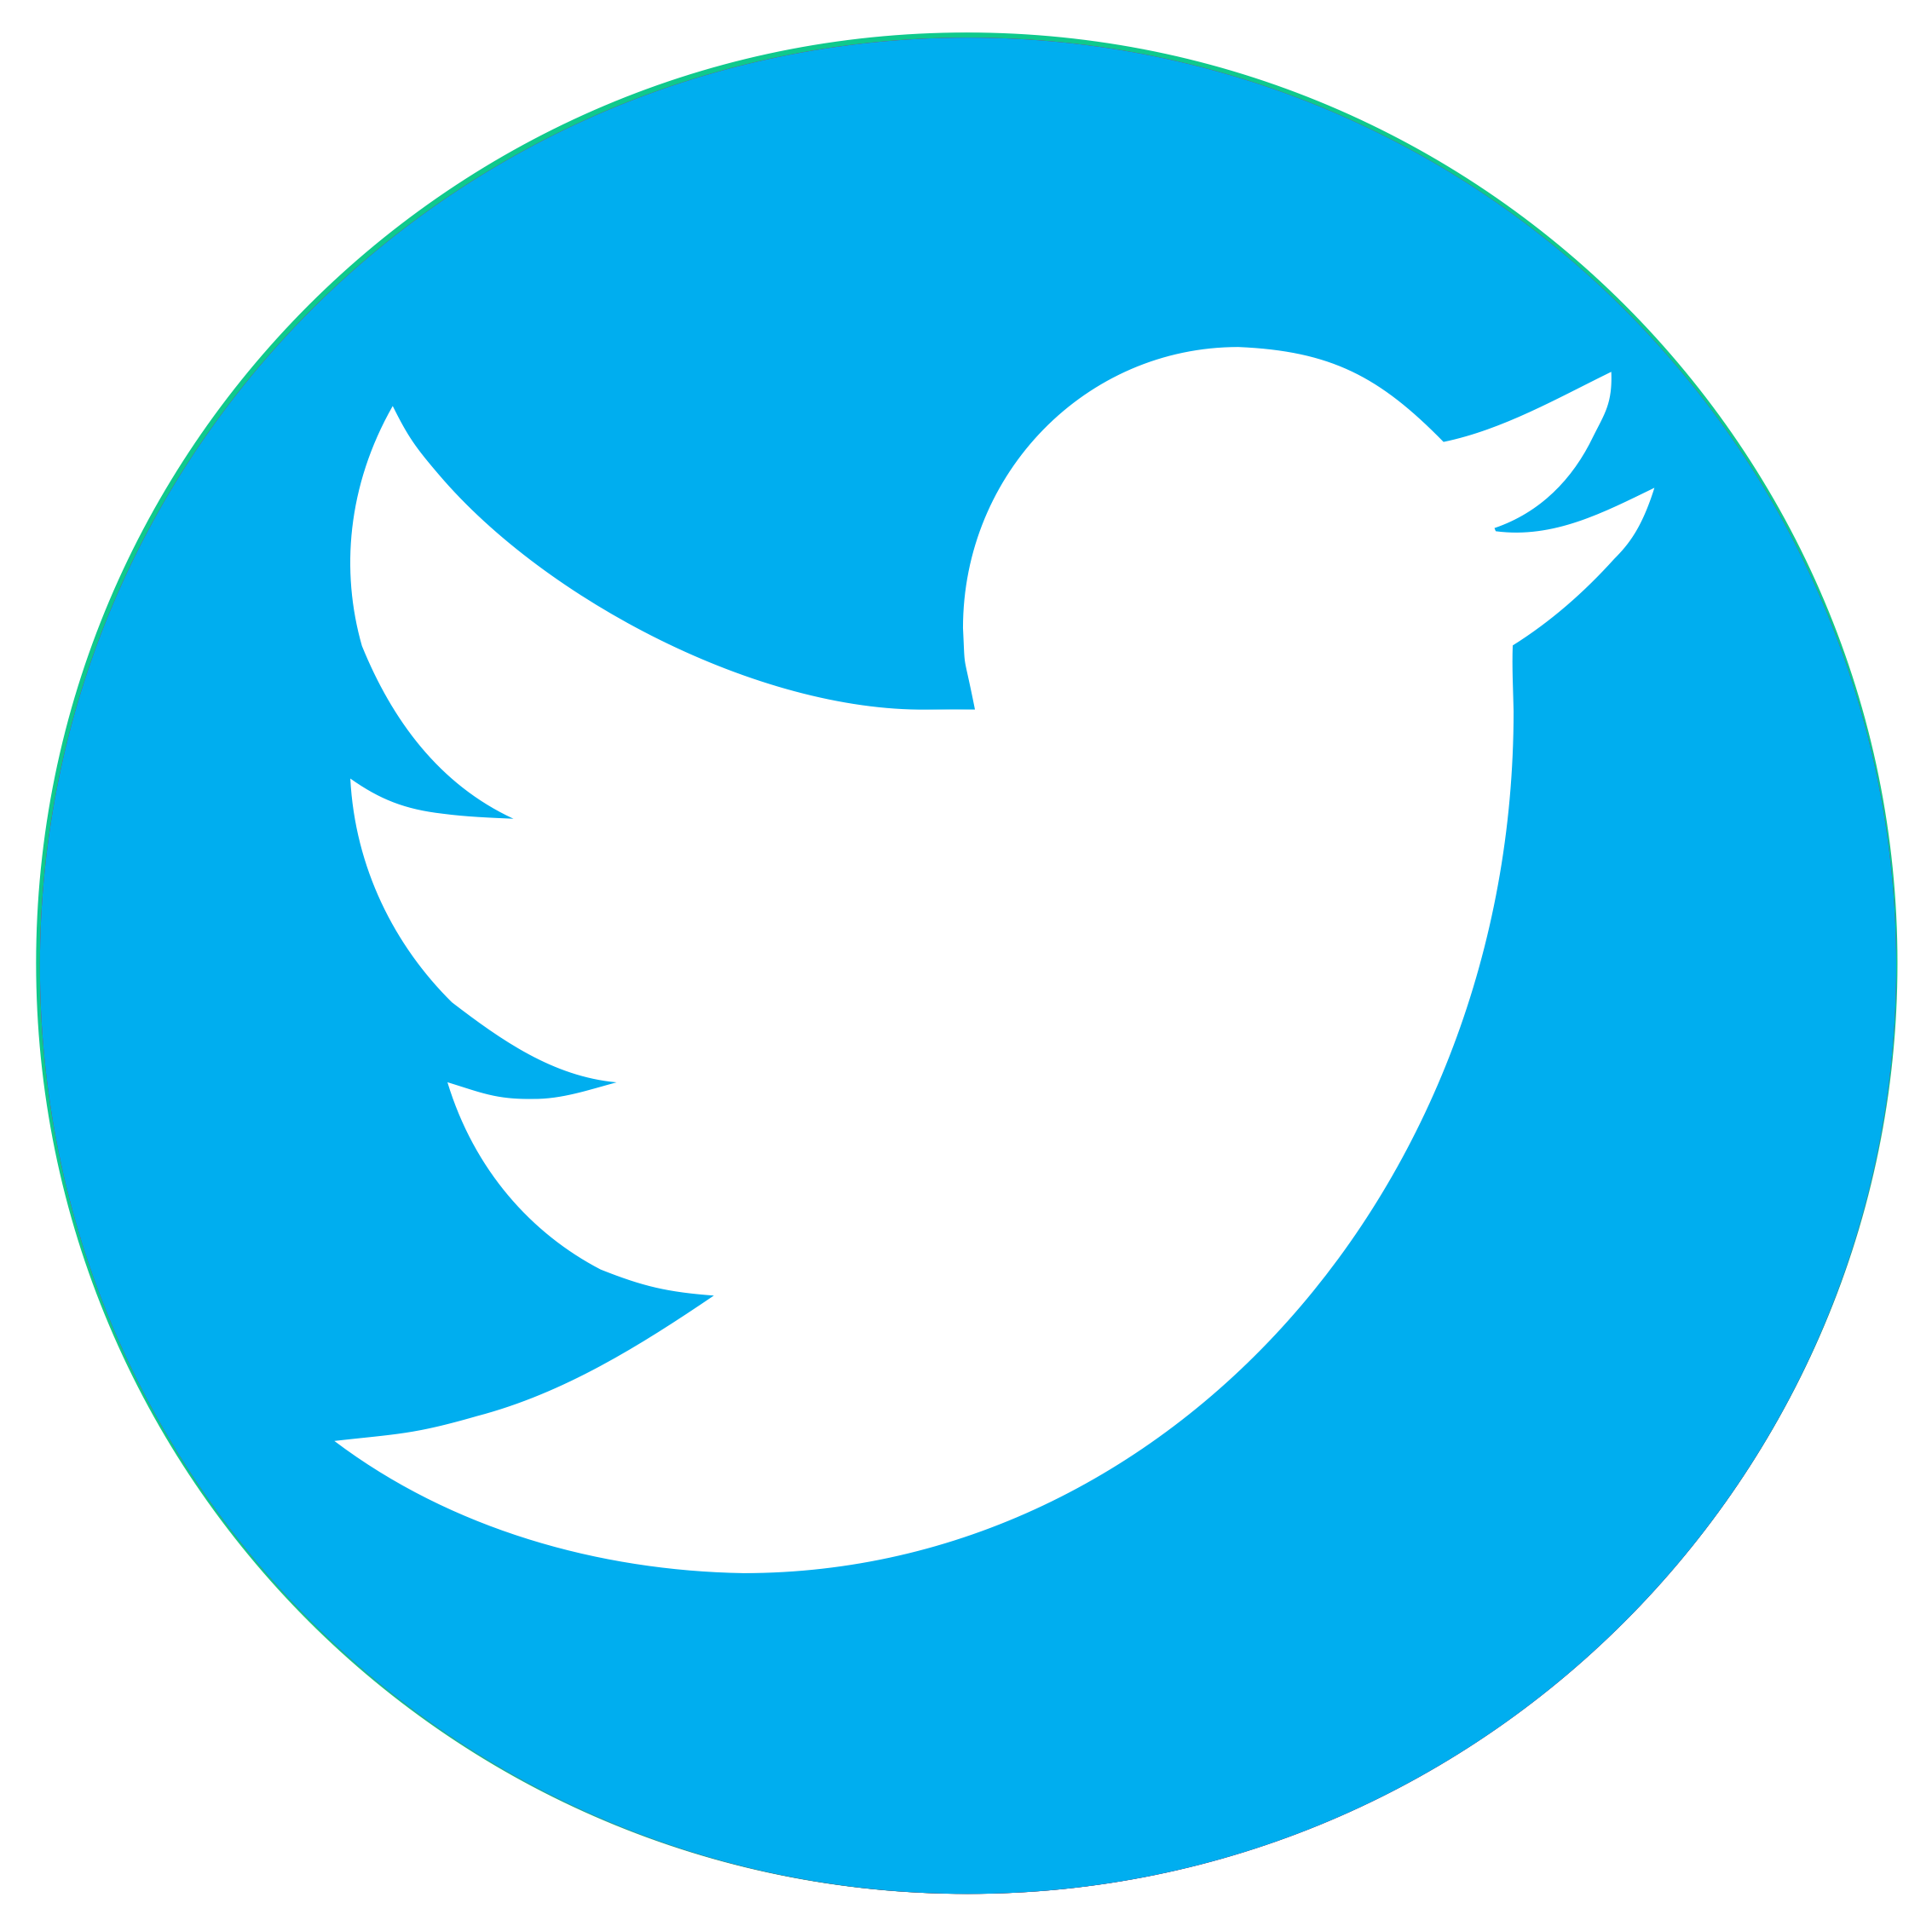 Twitter logo circle download free clip art with a.